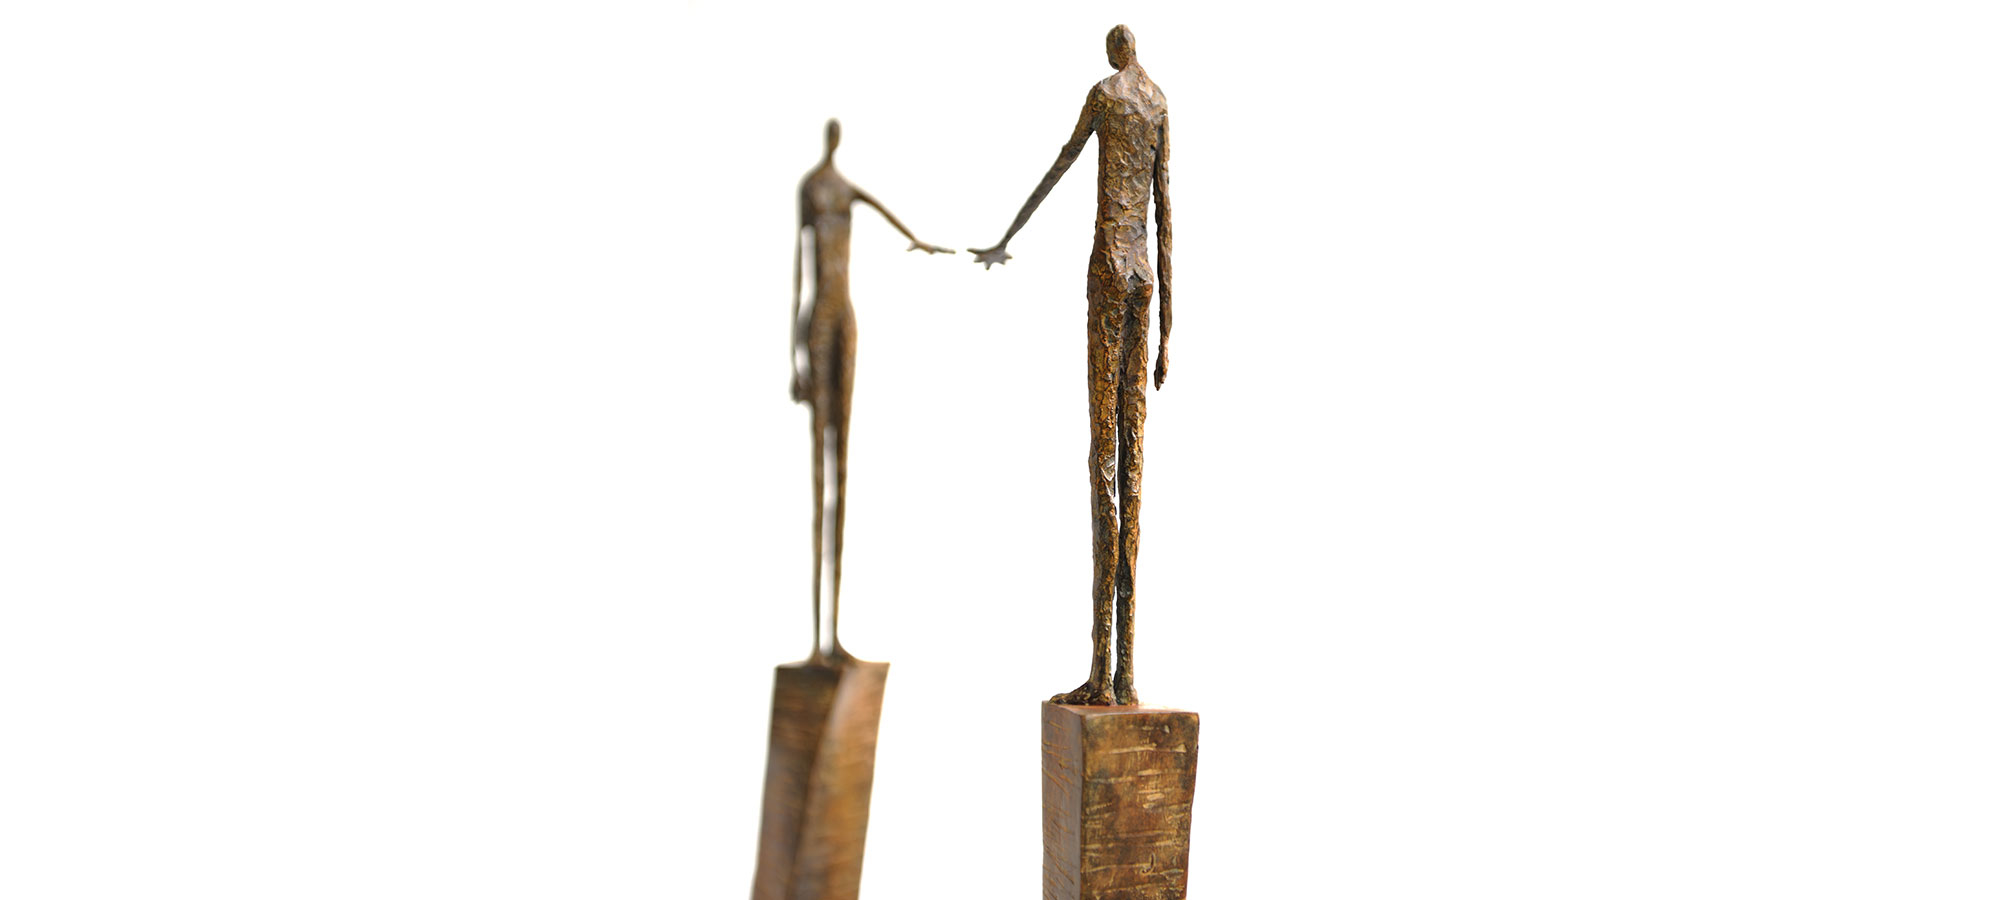 Finding soul mate by French sculptor Val - Valérie Goutard - with Sculptureval